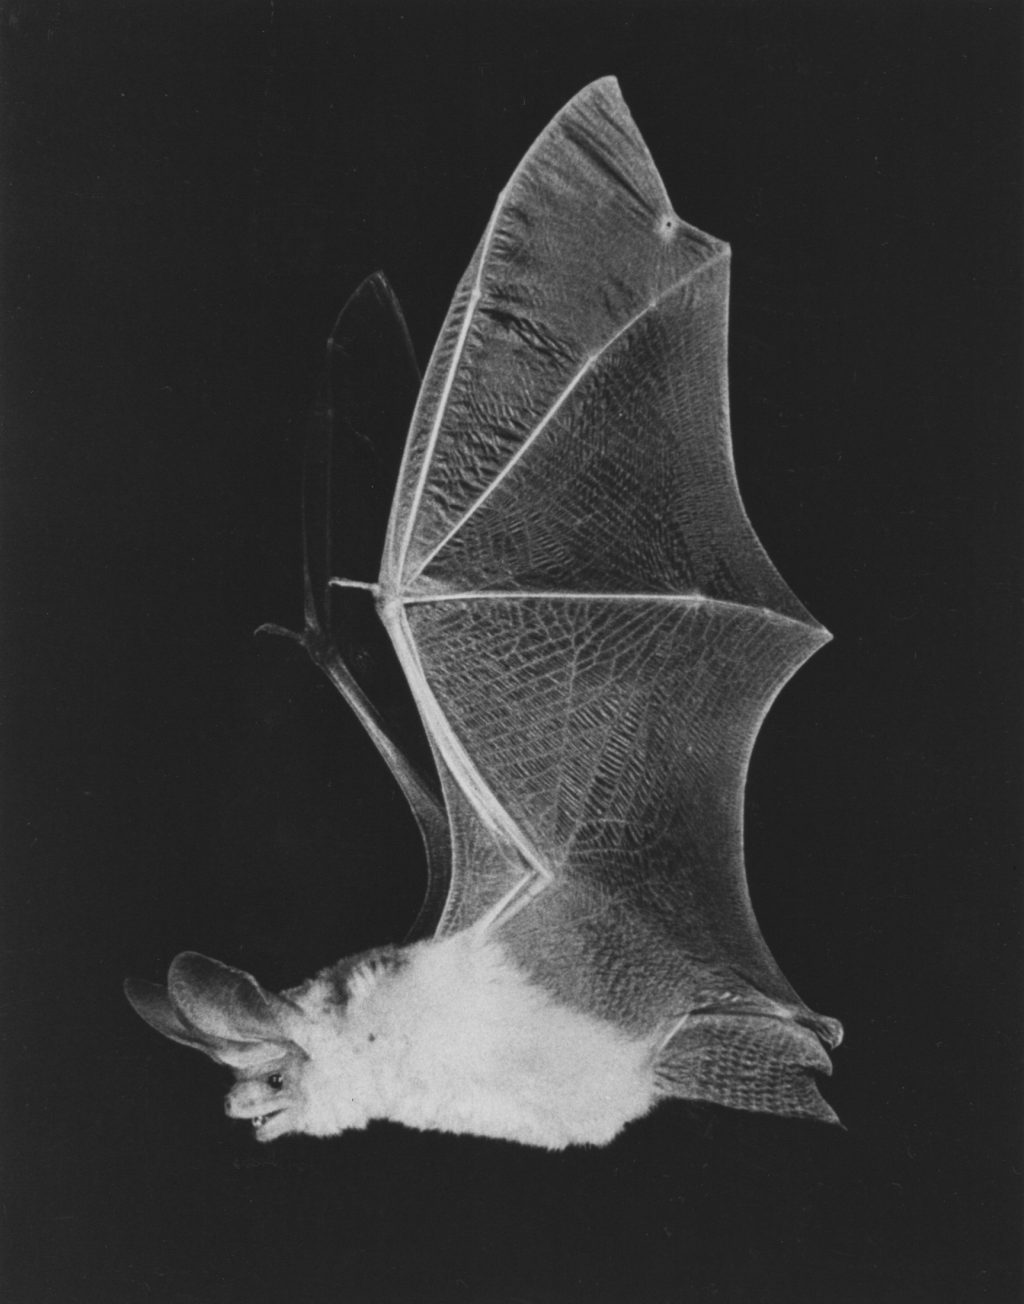 photo of bat in flight